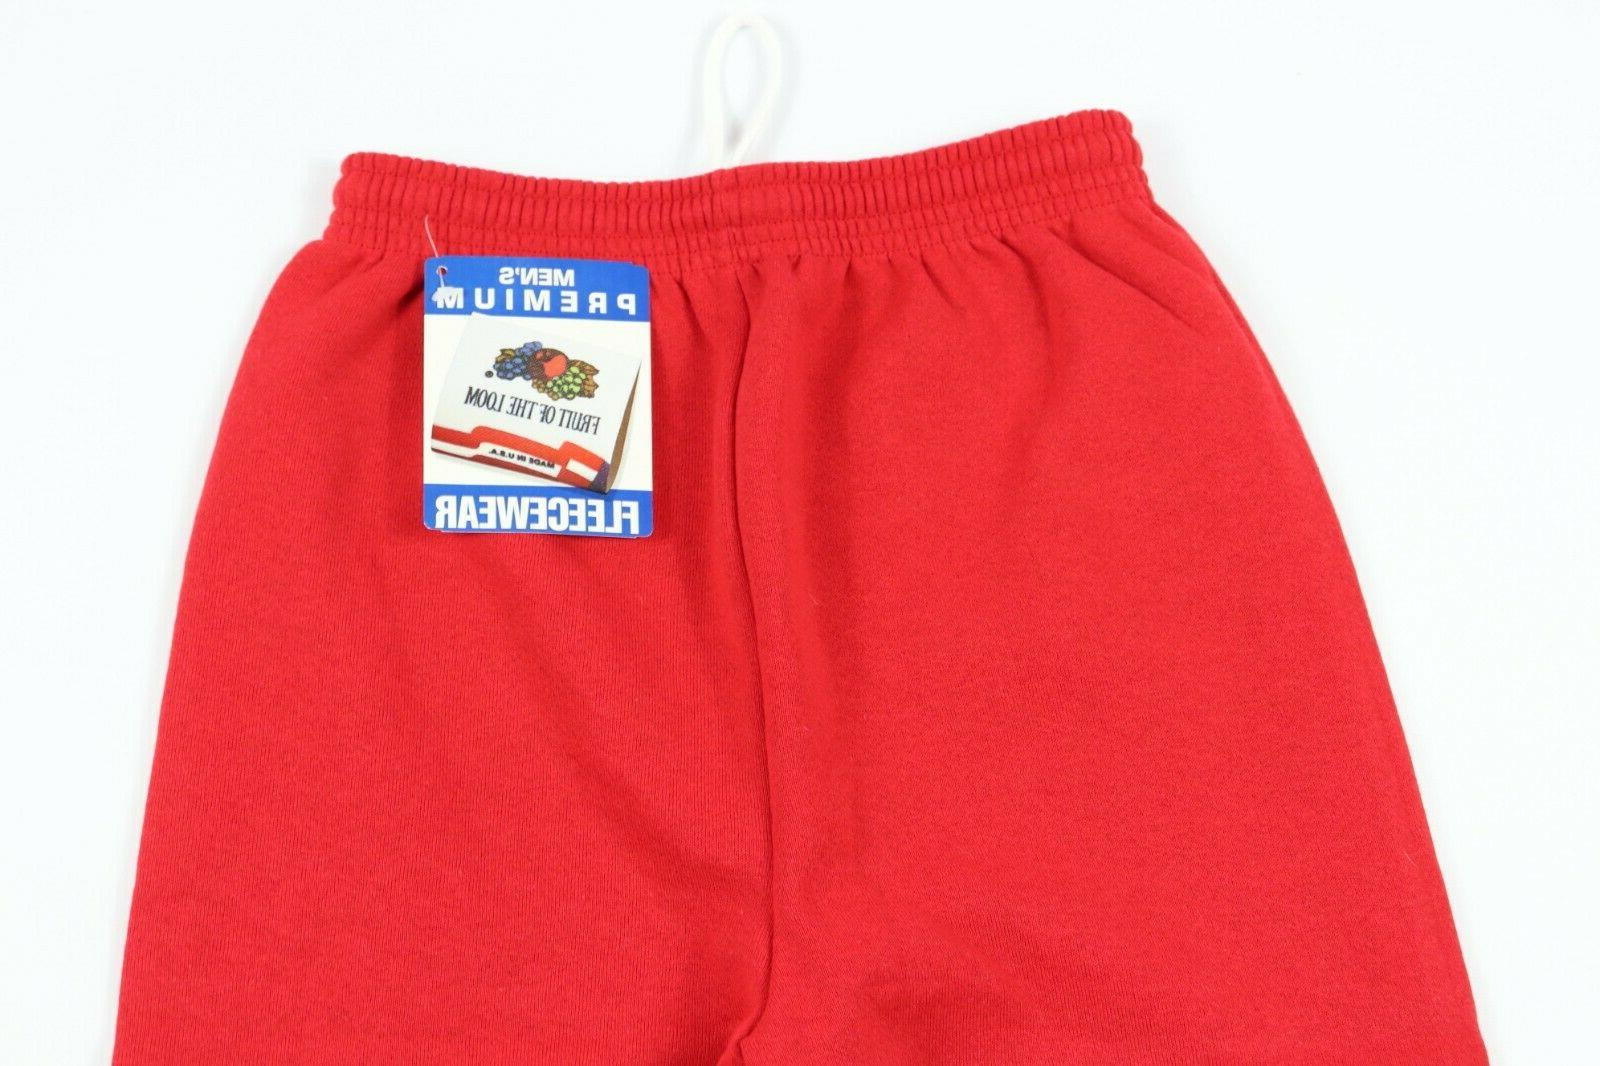 New Vtg 90s of the Mens Small Fleecewear Sweatpants Red